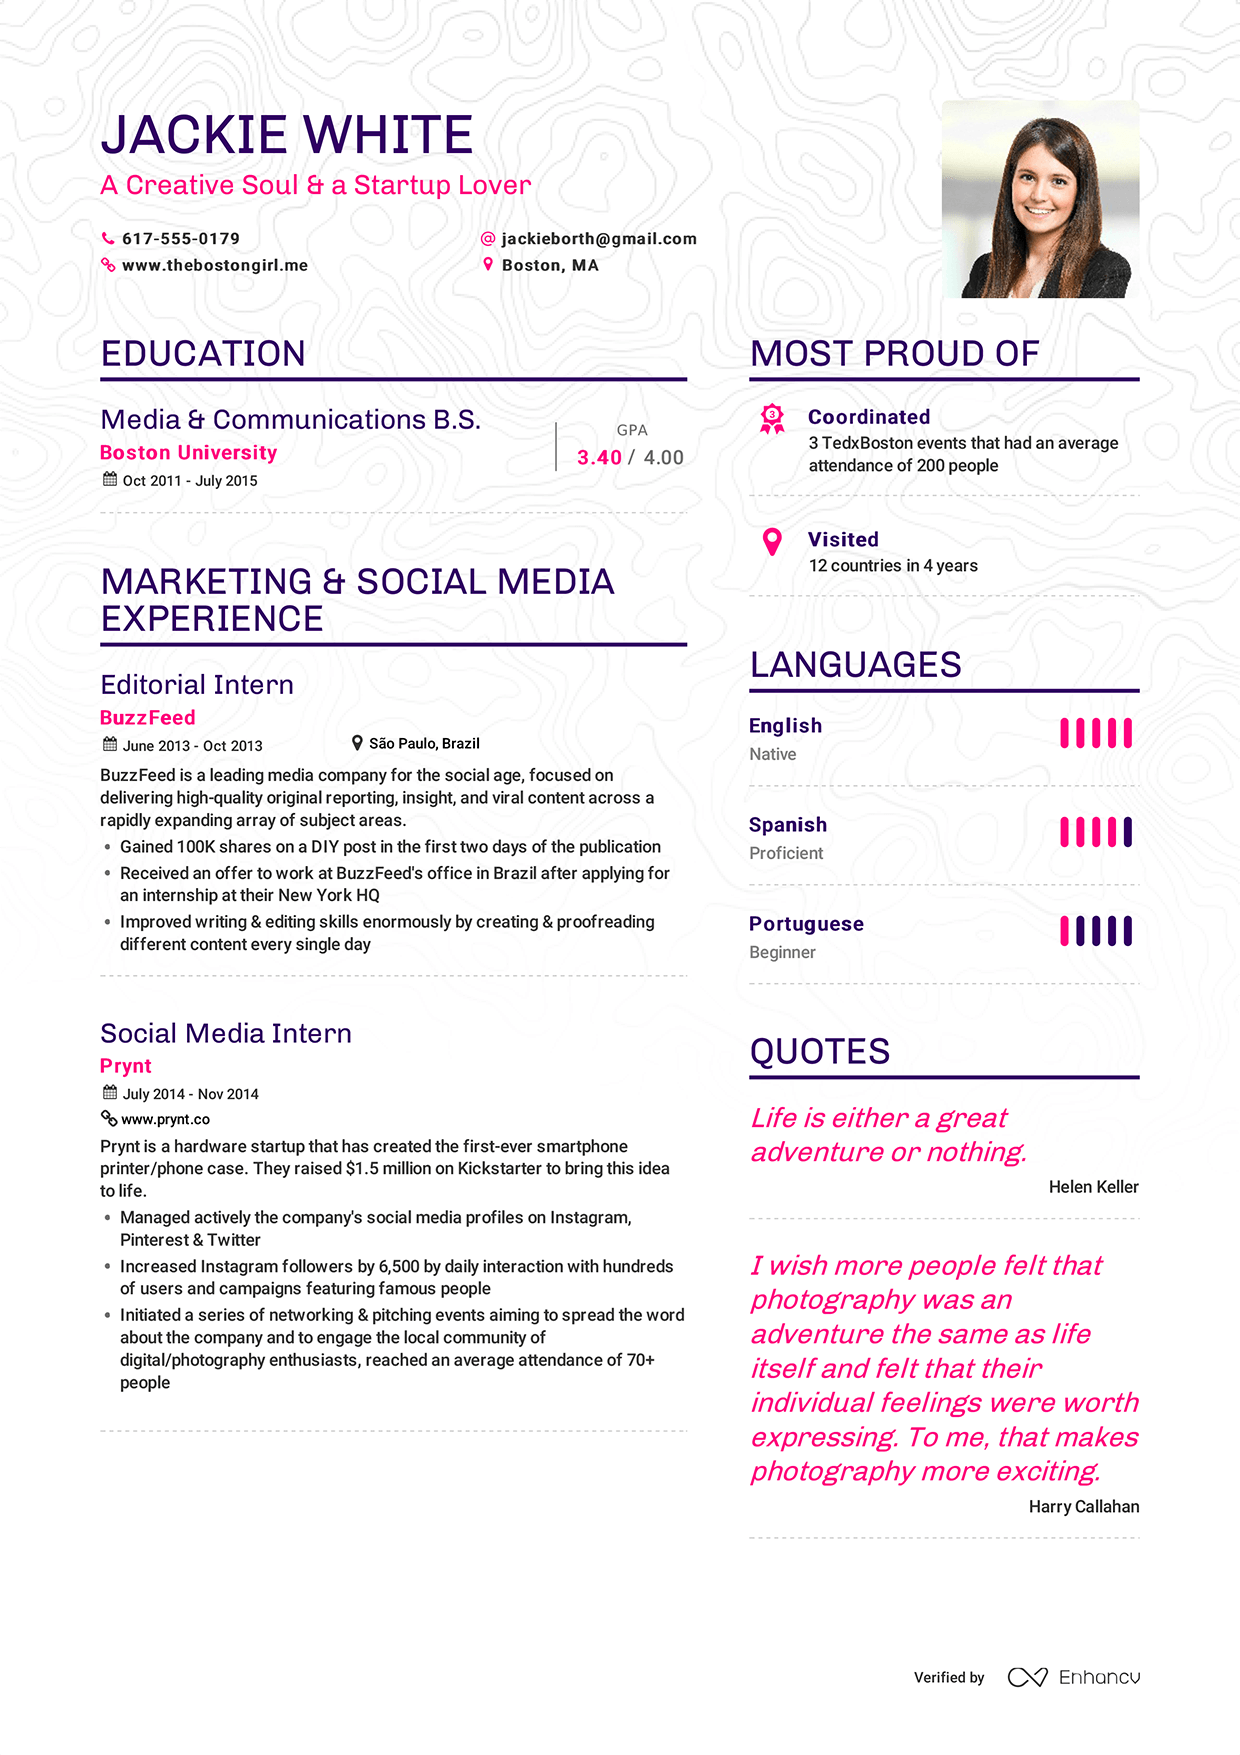 Resume Example Images Of Resume examples of resumes by enhancv jackie white resume page 1